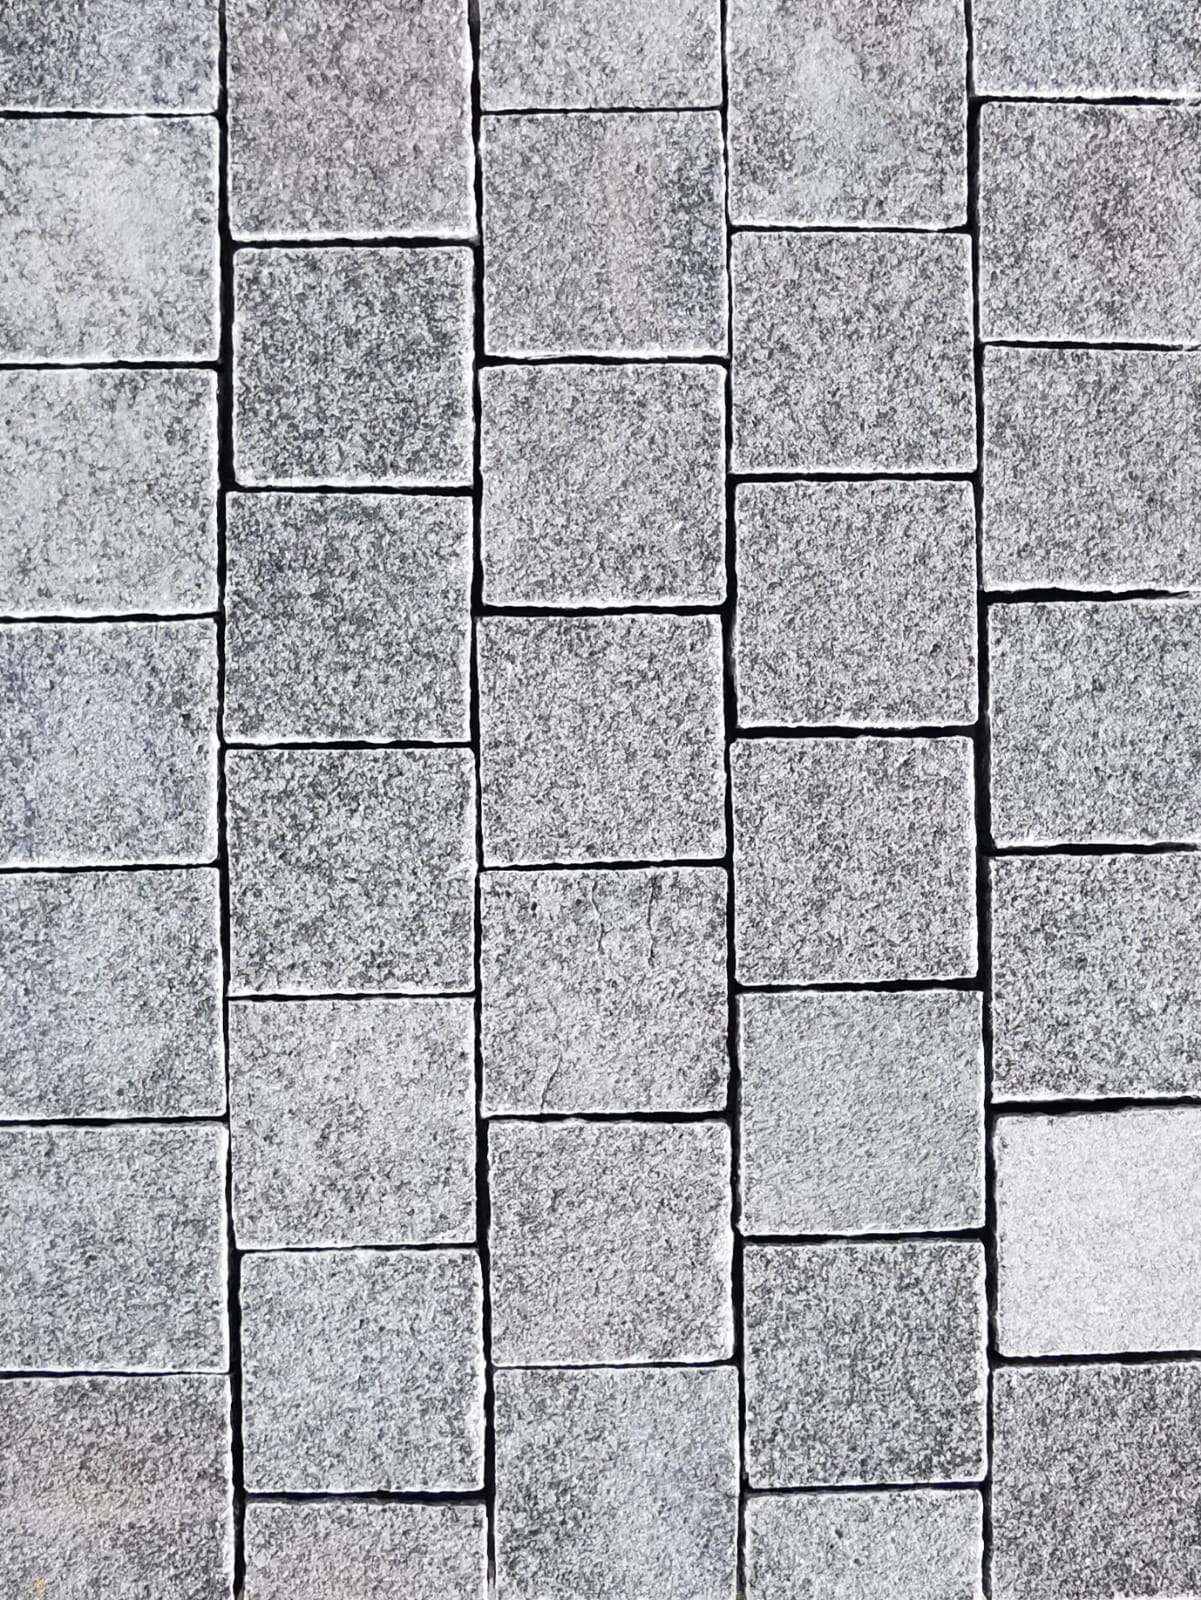 Granite Paver Square